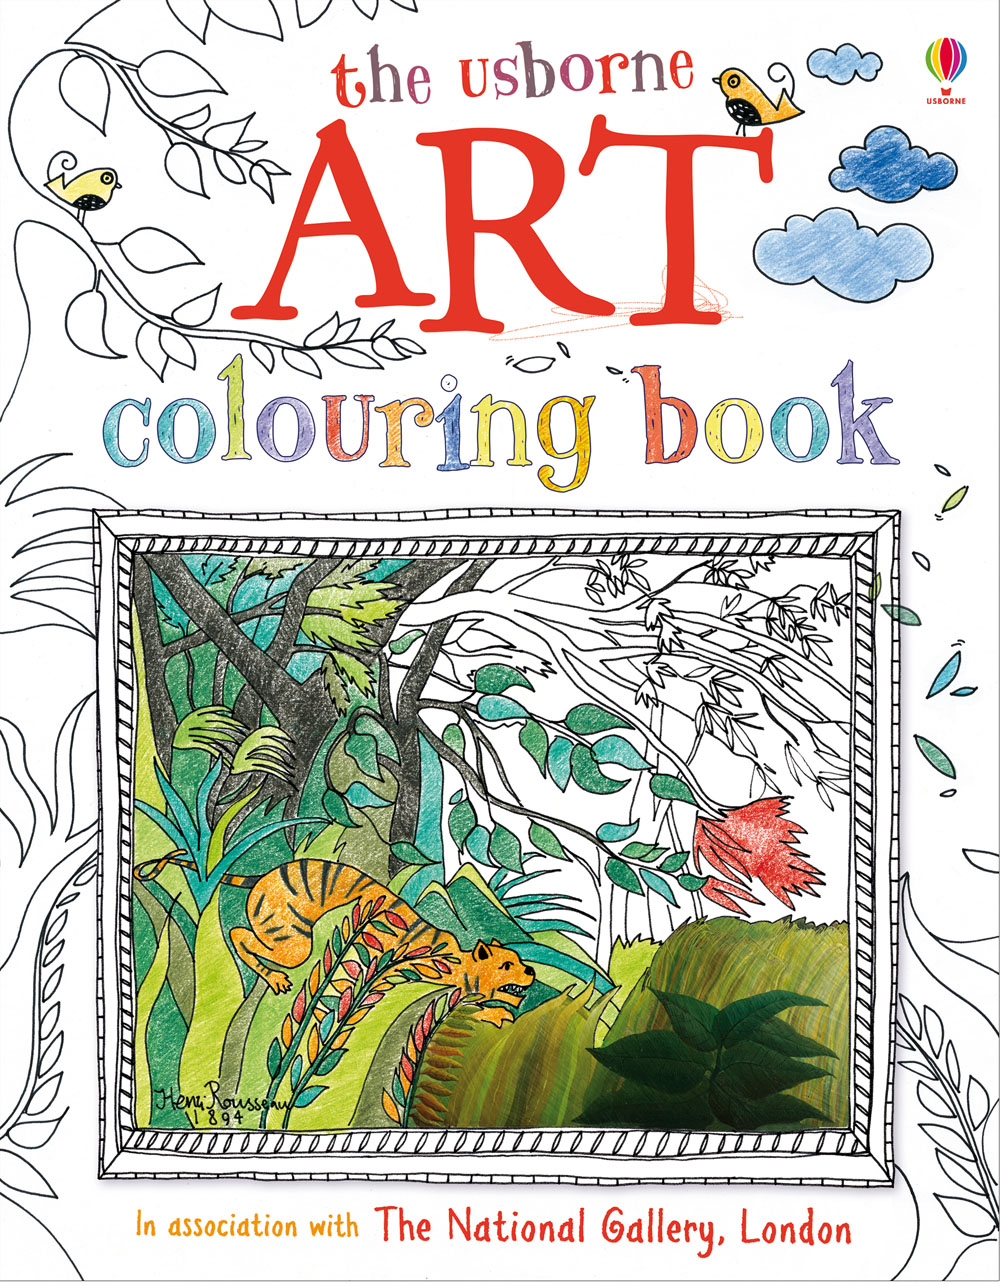 Amazing Coloring Book Wallpaper Tall Coloring Book App Rectangular Bulk Coloring Books Animal Coloring Book Youthful Animal Coloring Books BrownBig Coloring Books Art Colouring Book\u201d At Usborne Children\u0027s Books